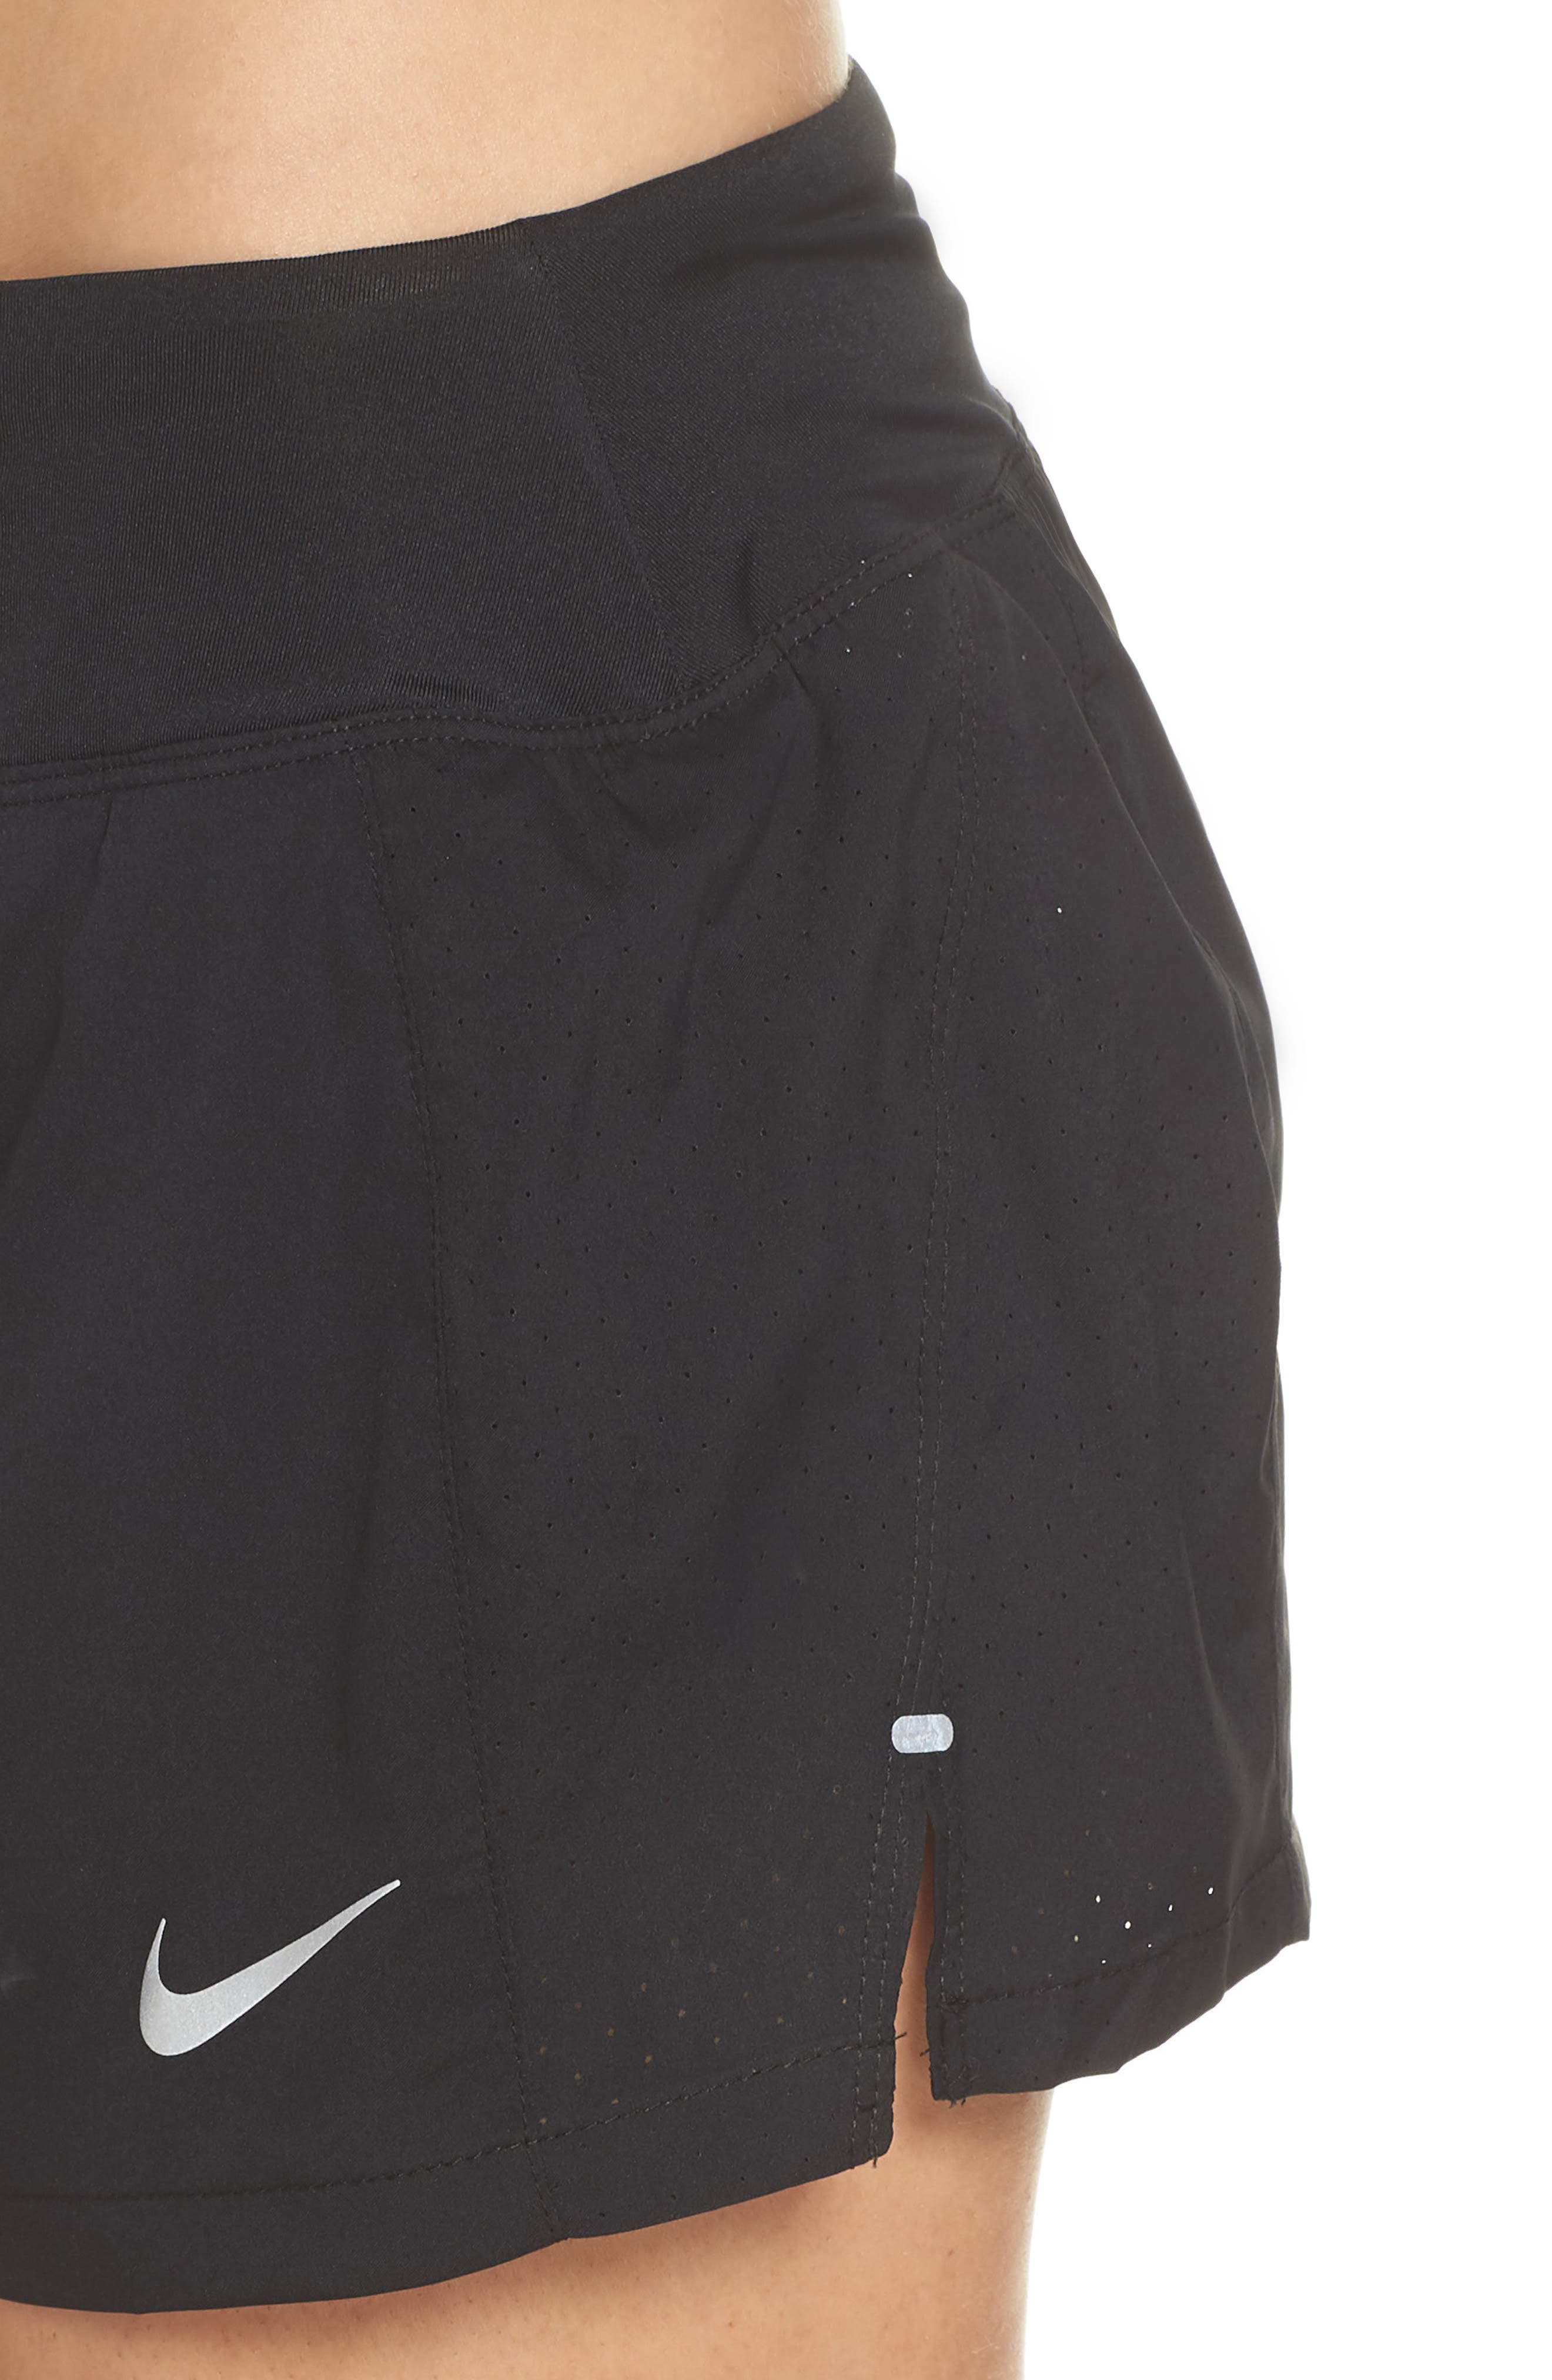 Dry Eclipse Running Shorts,                             Alternate thumbnail 4, color,                             010